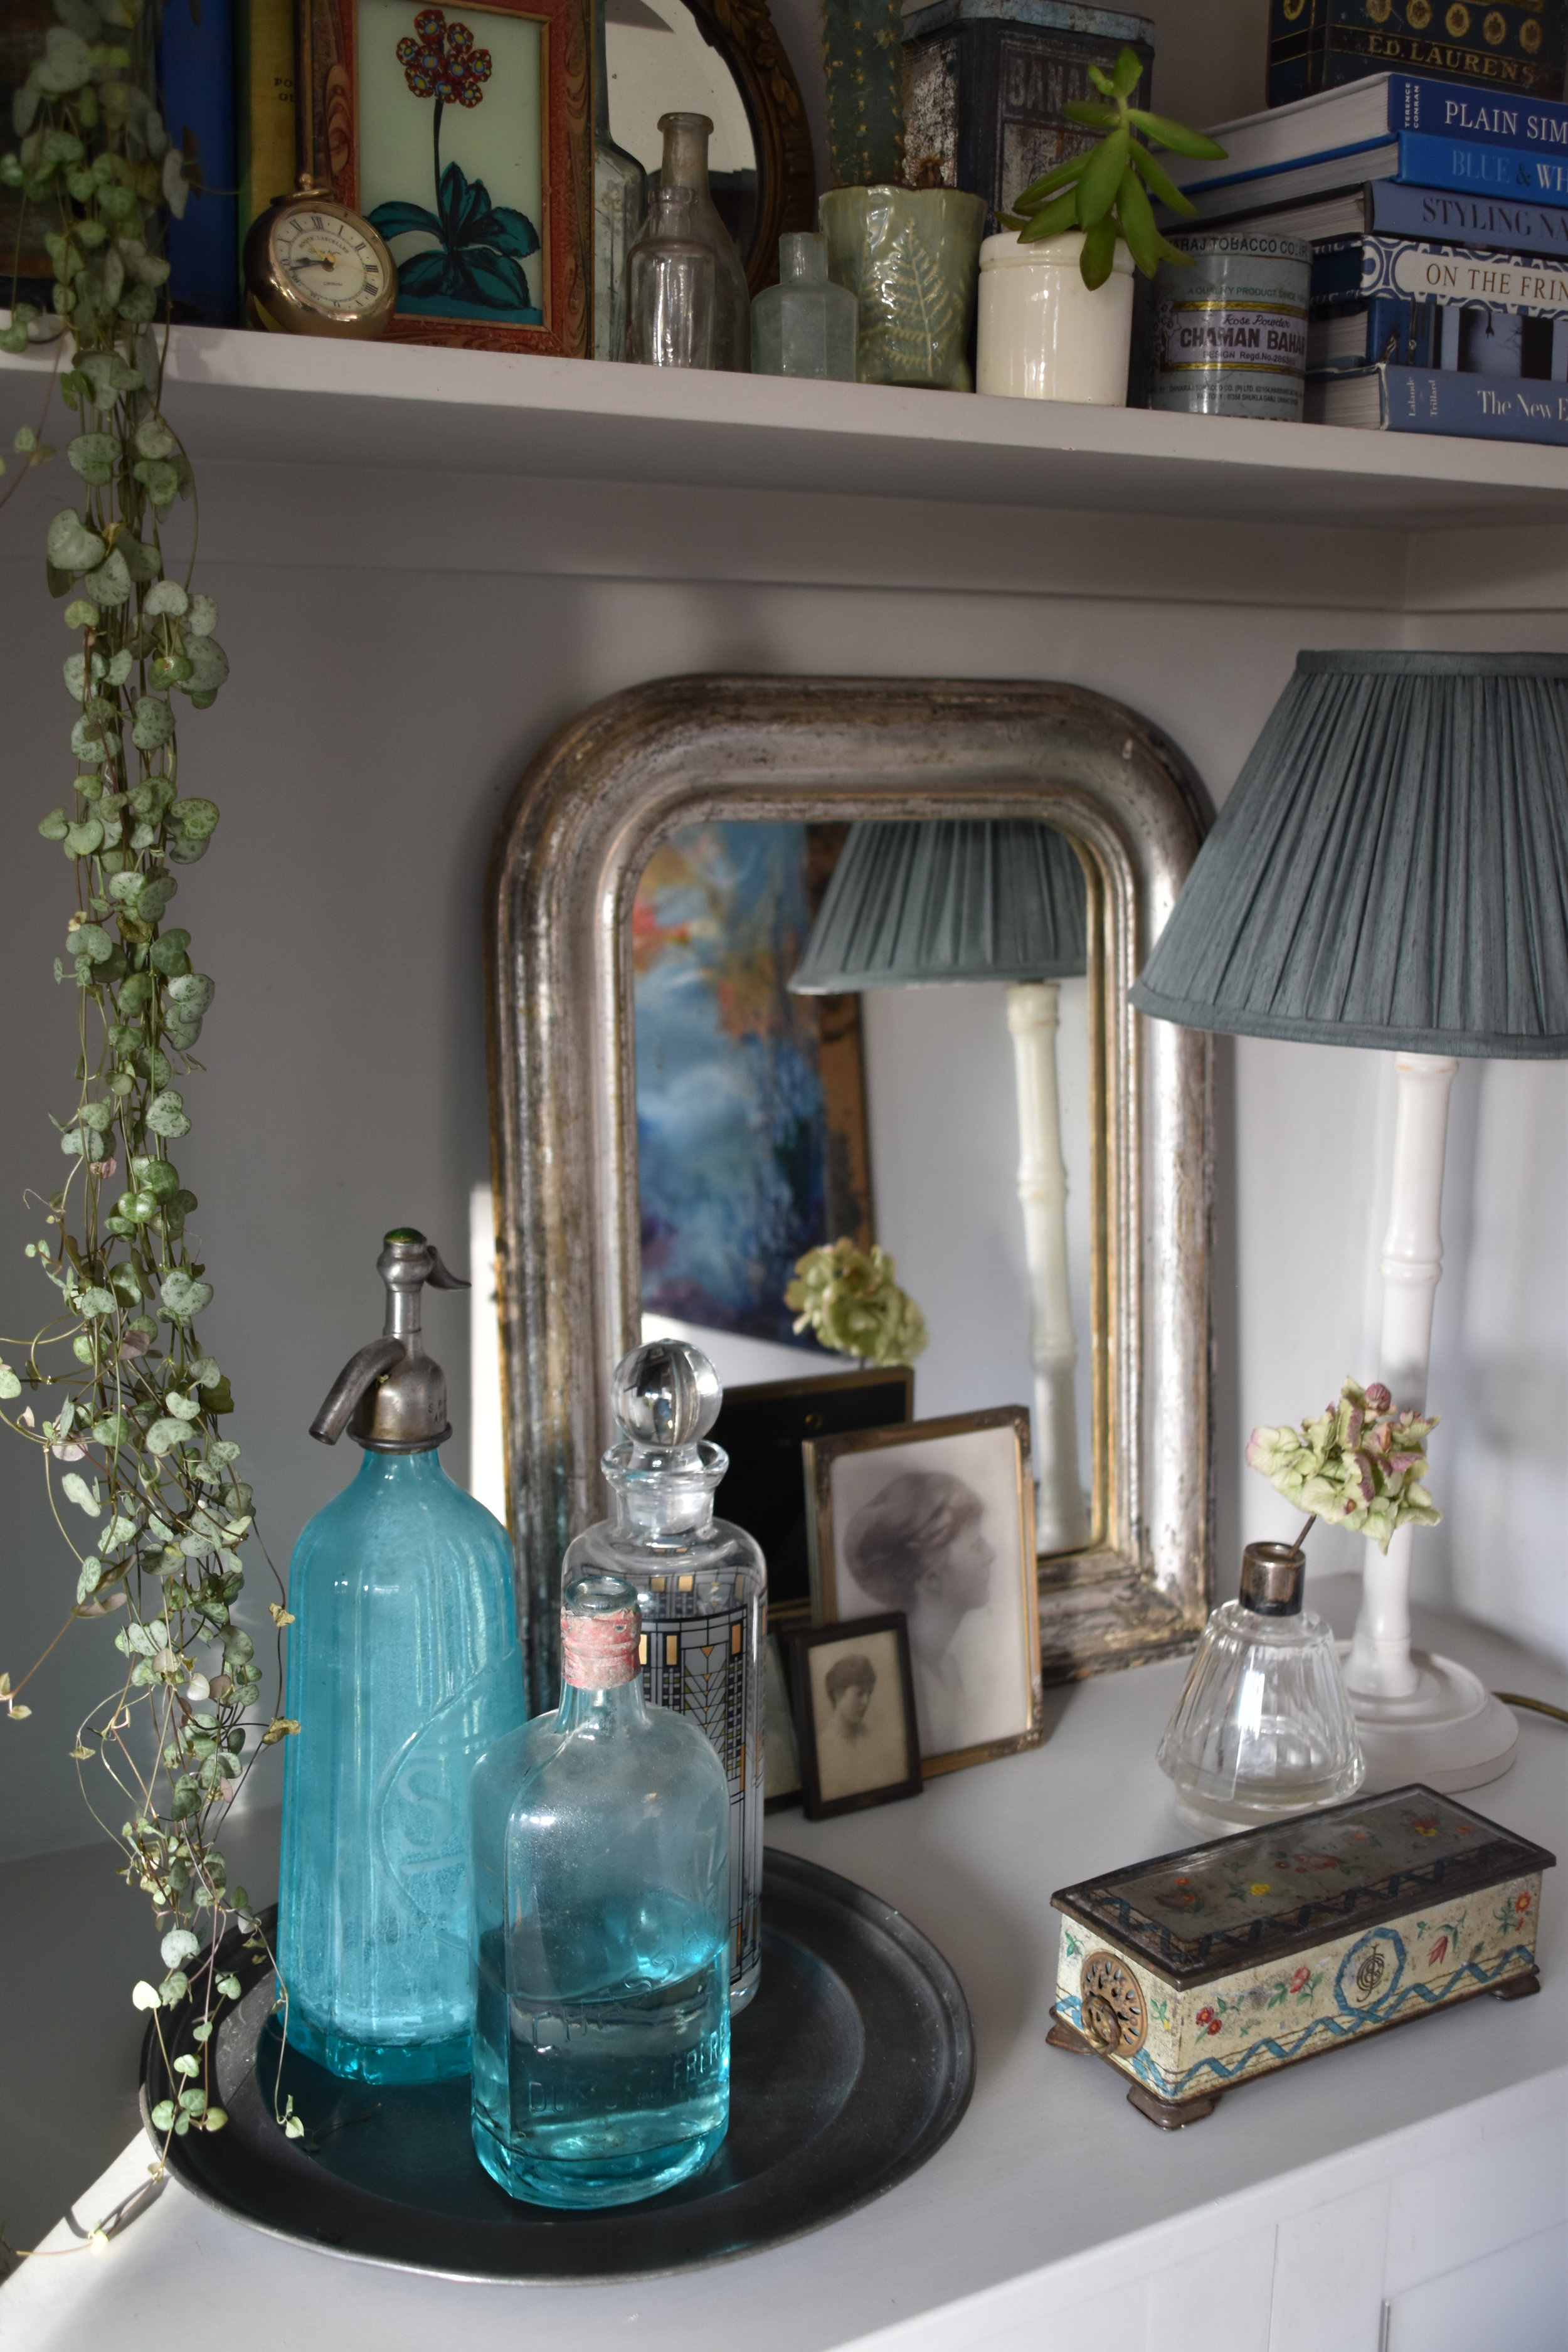 Mirror used as backdrop to this shelfie and trailing plant